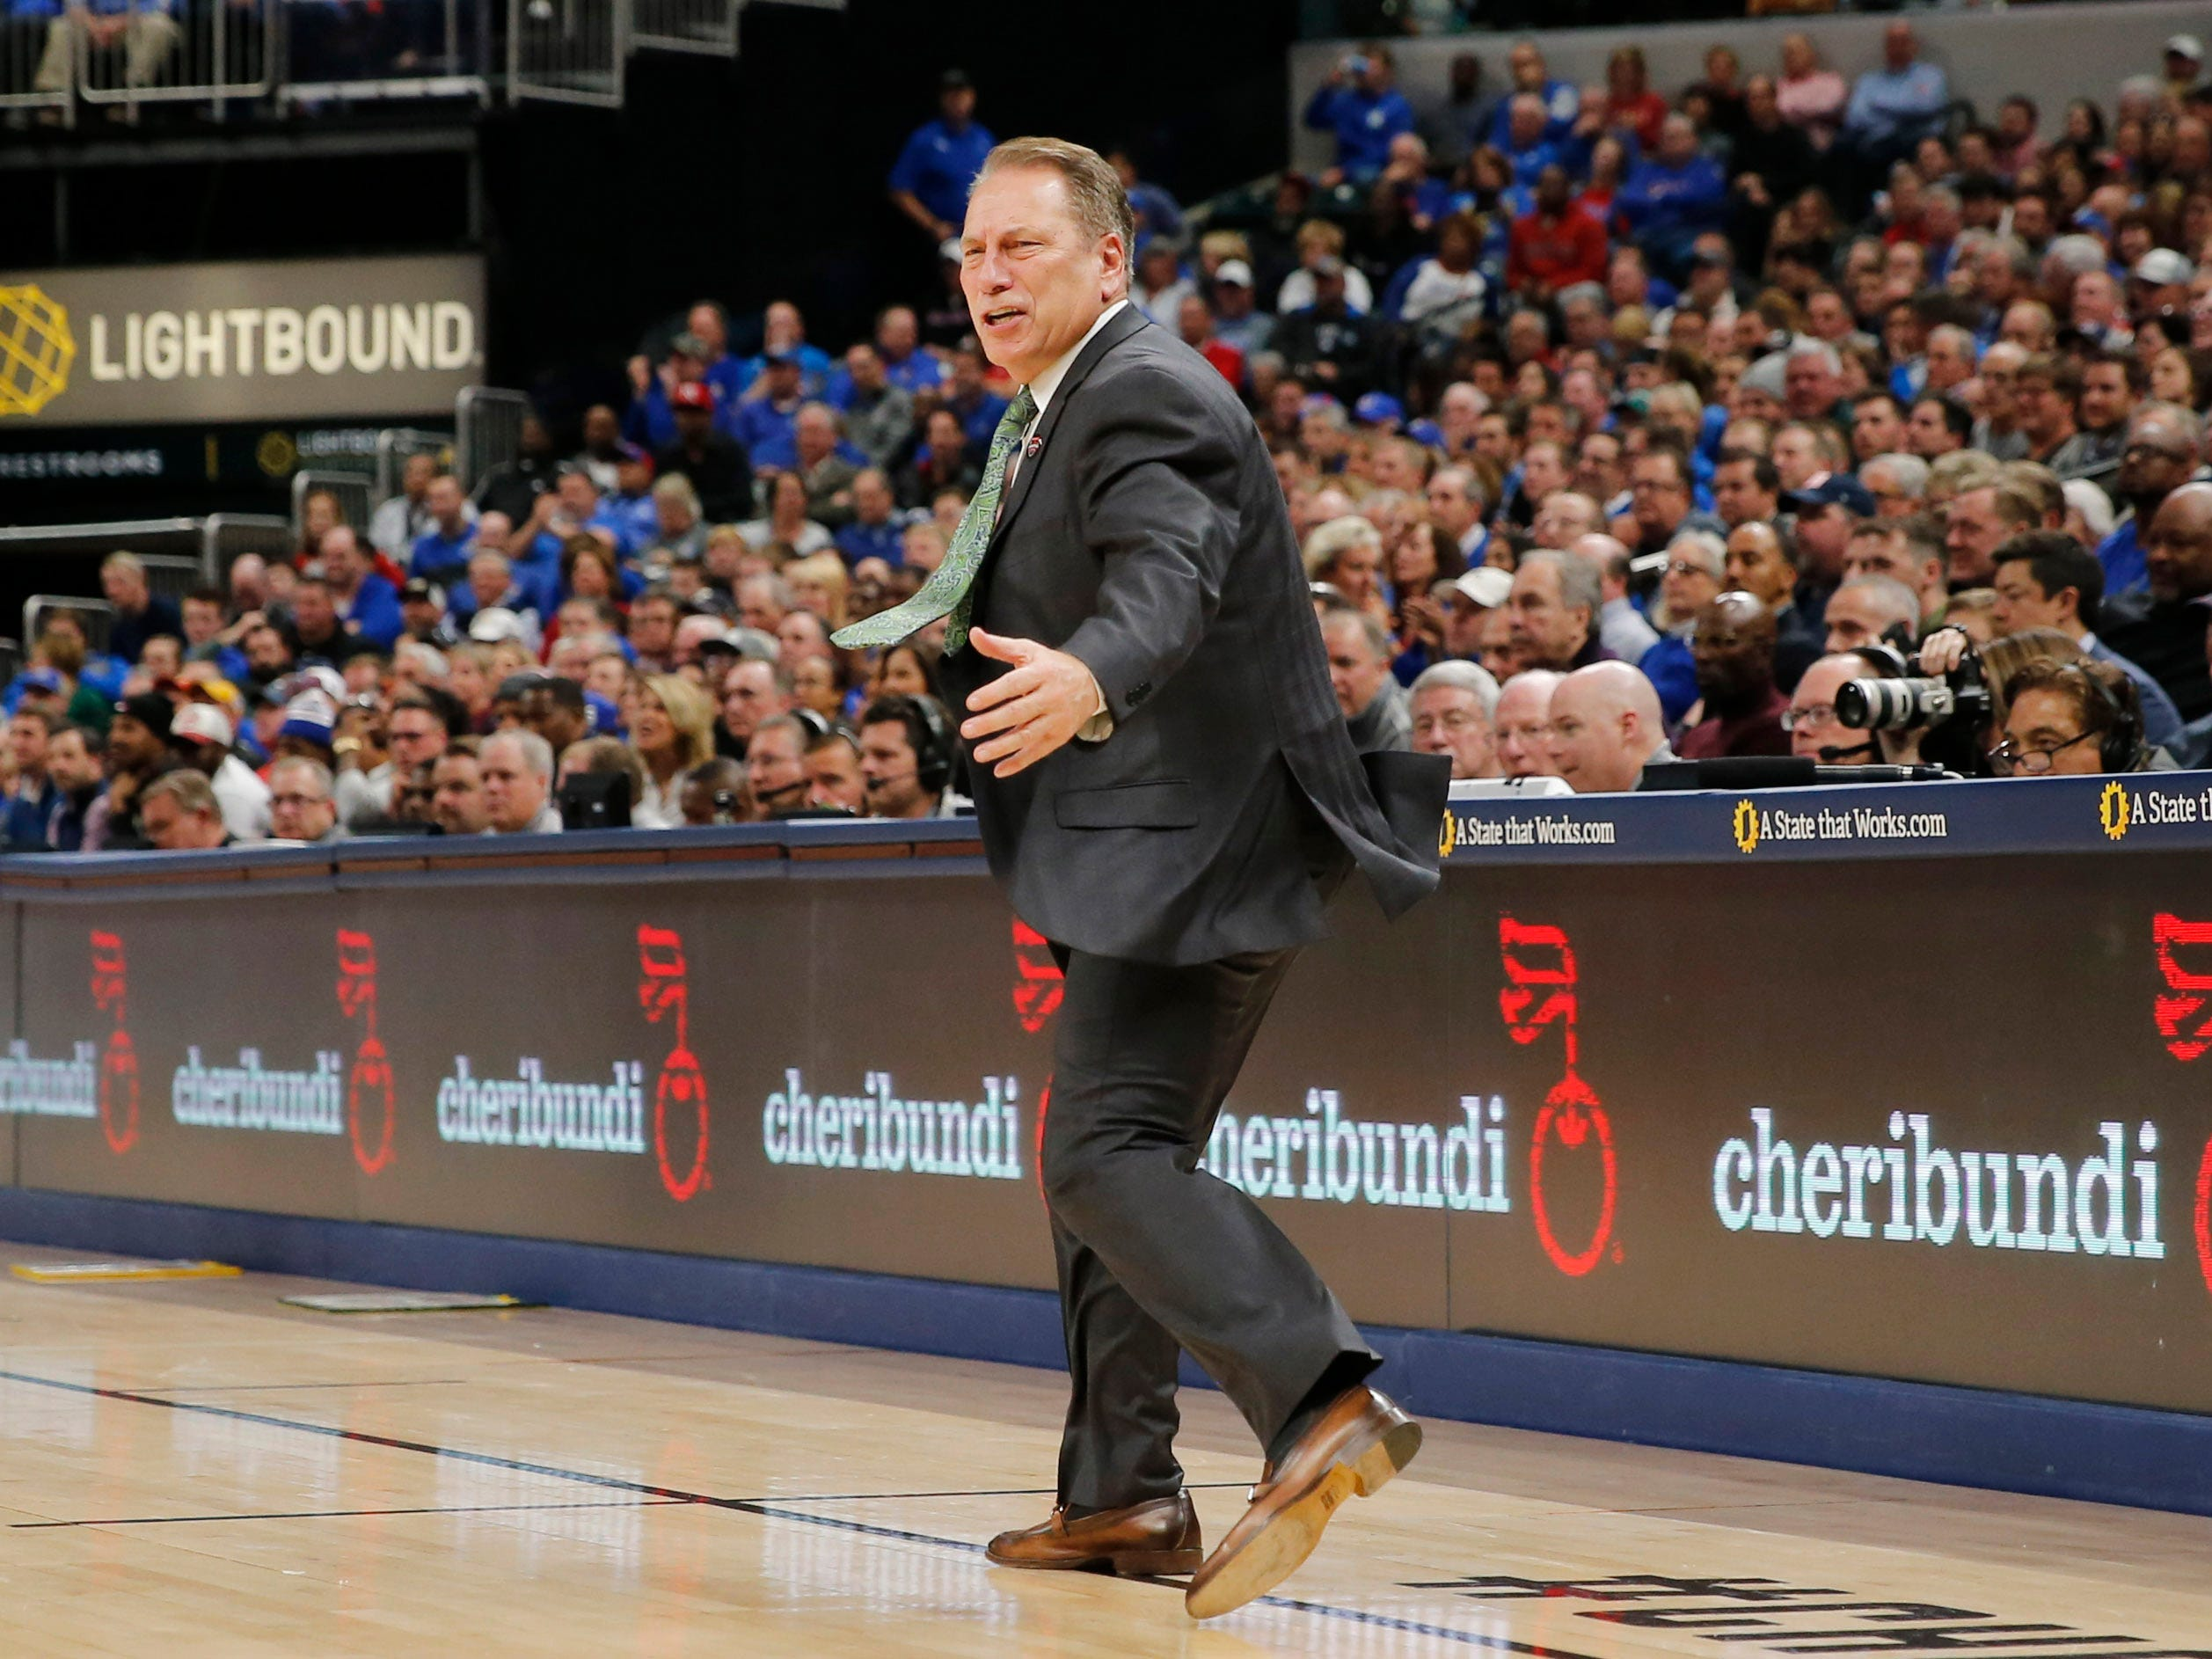 Michigan State Spartans Tom Izzo coaches on the sidelines against the Kansas Jayhawks in the second half during the Champions Classic at Bankers Life Fieldhouse.